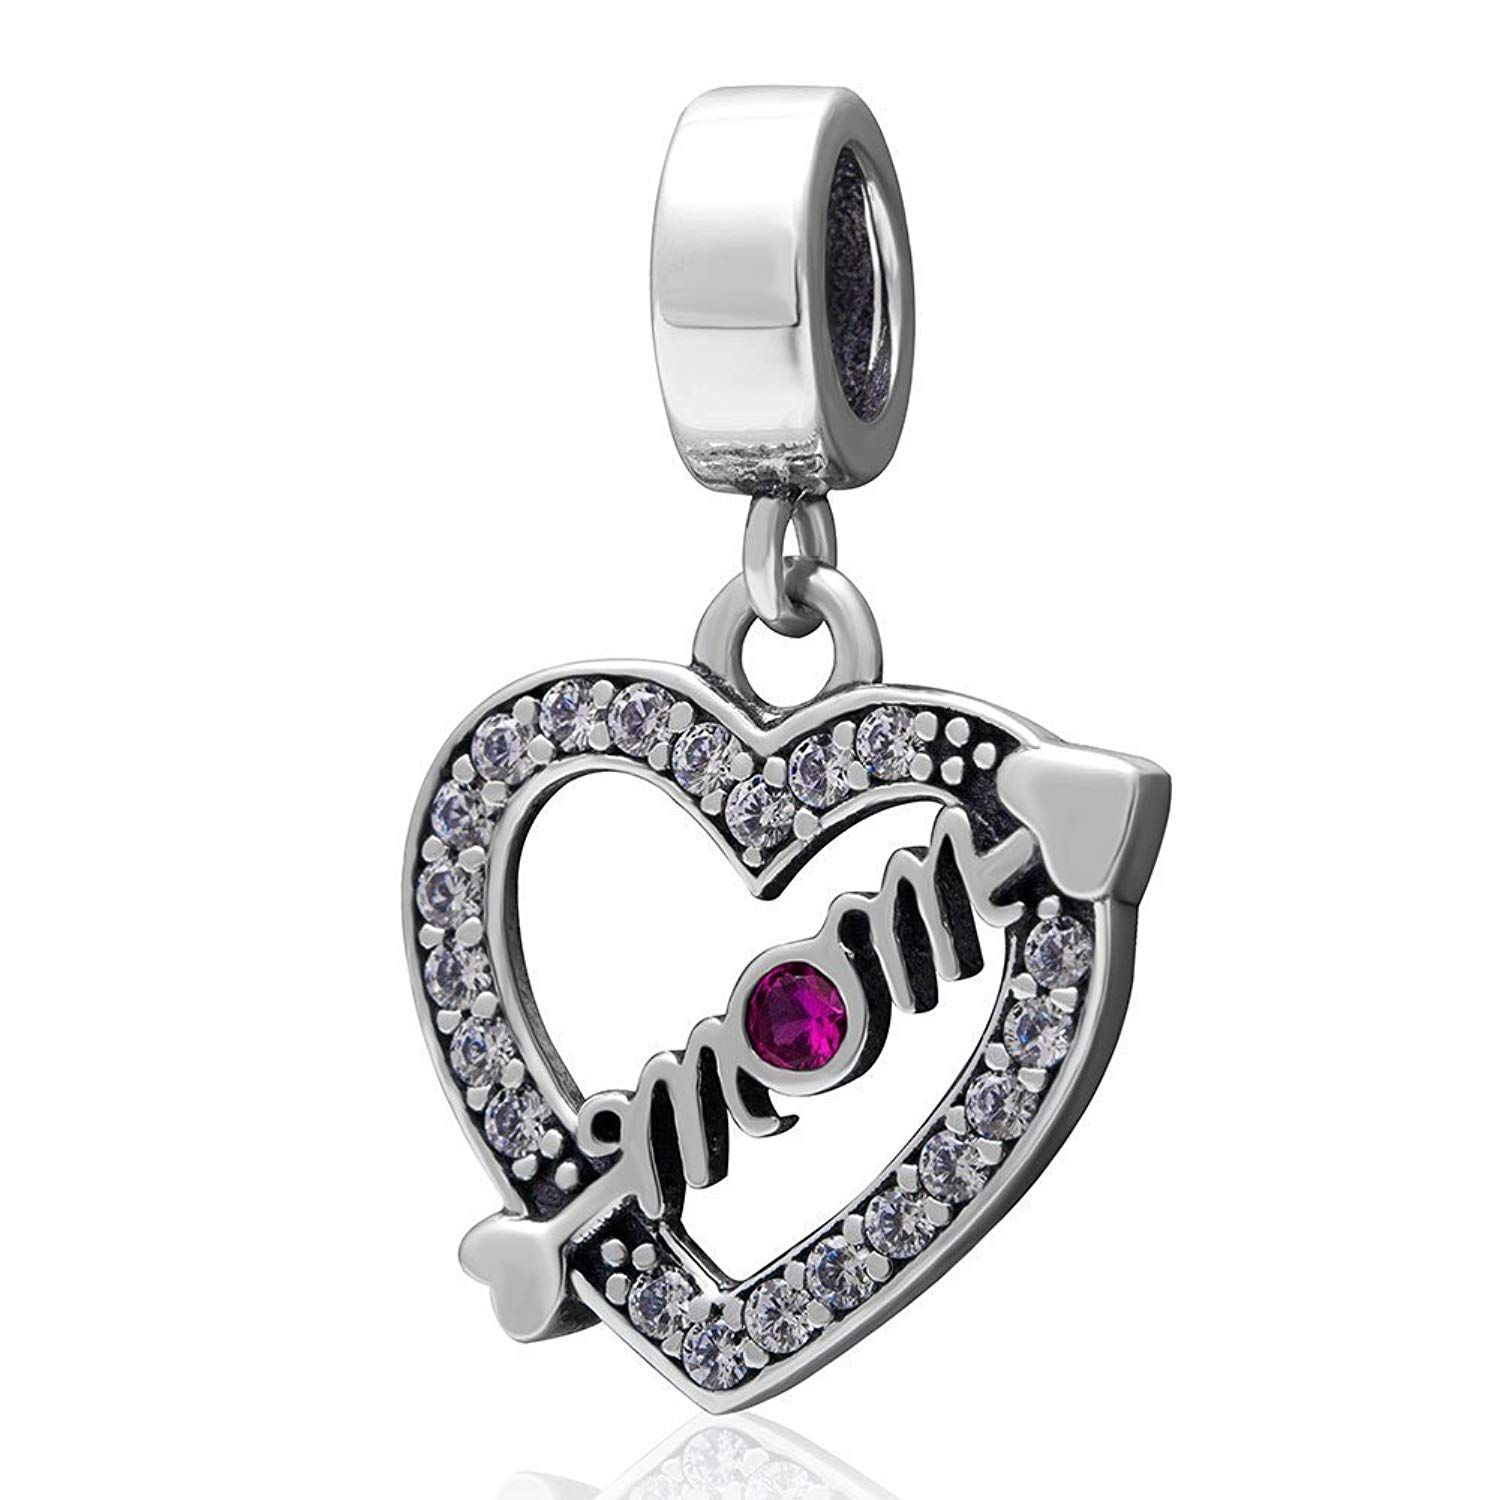 925 Sterling Silver PAN Charm Travel Popular Charms Fit Euro Charm Bracelet